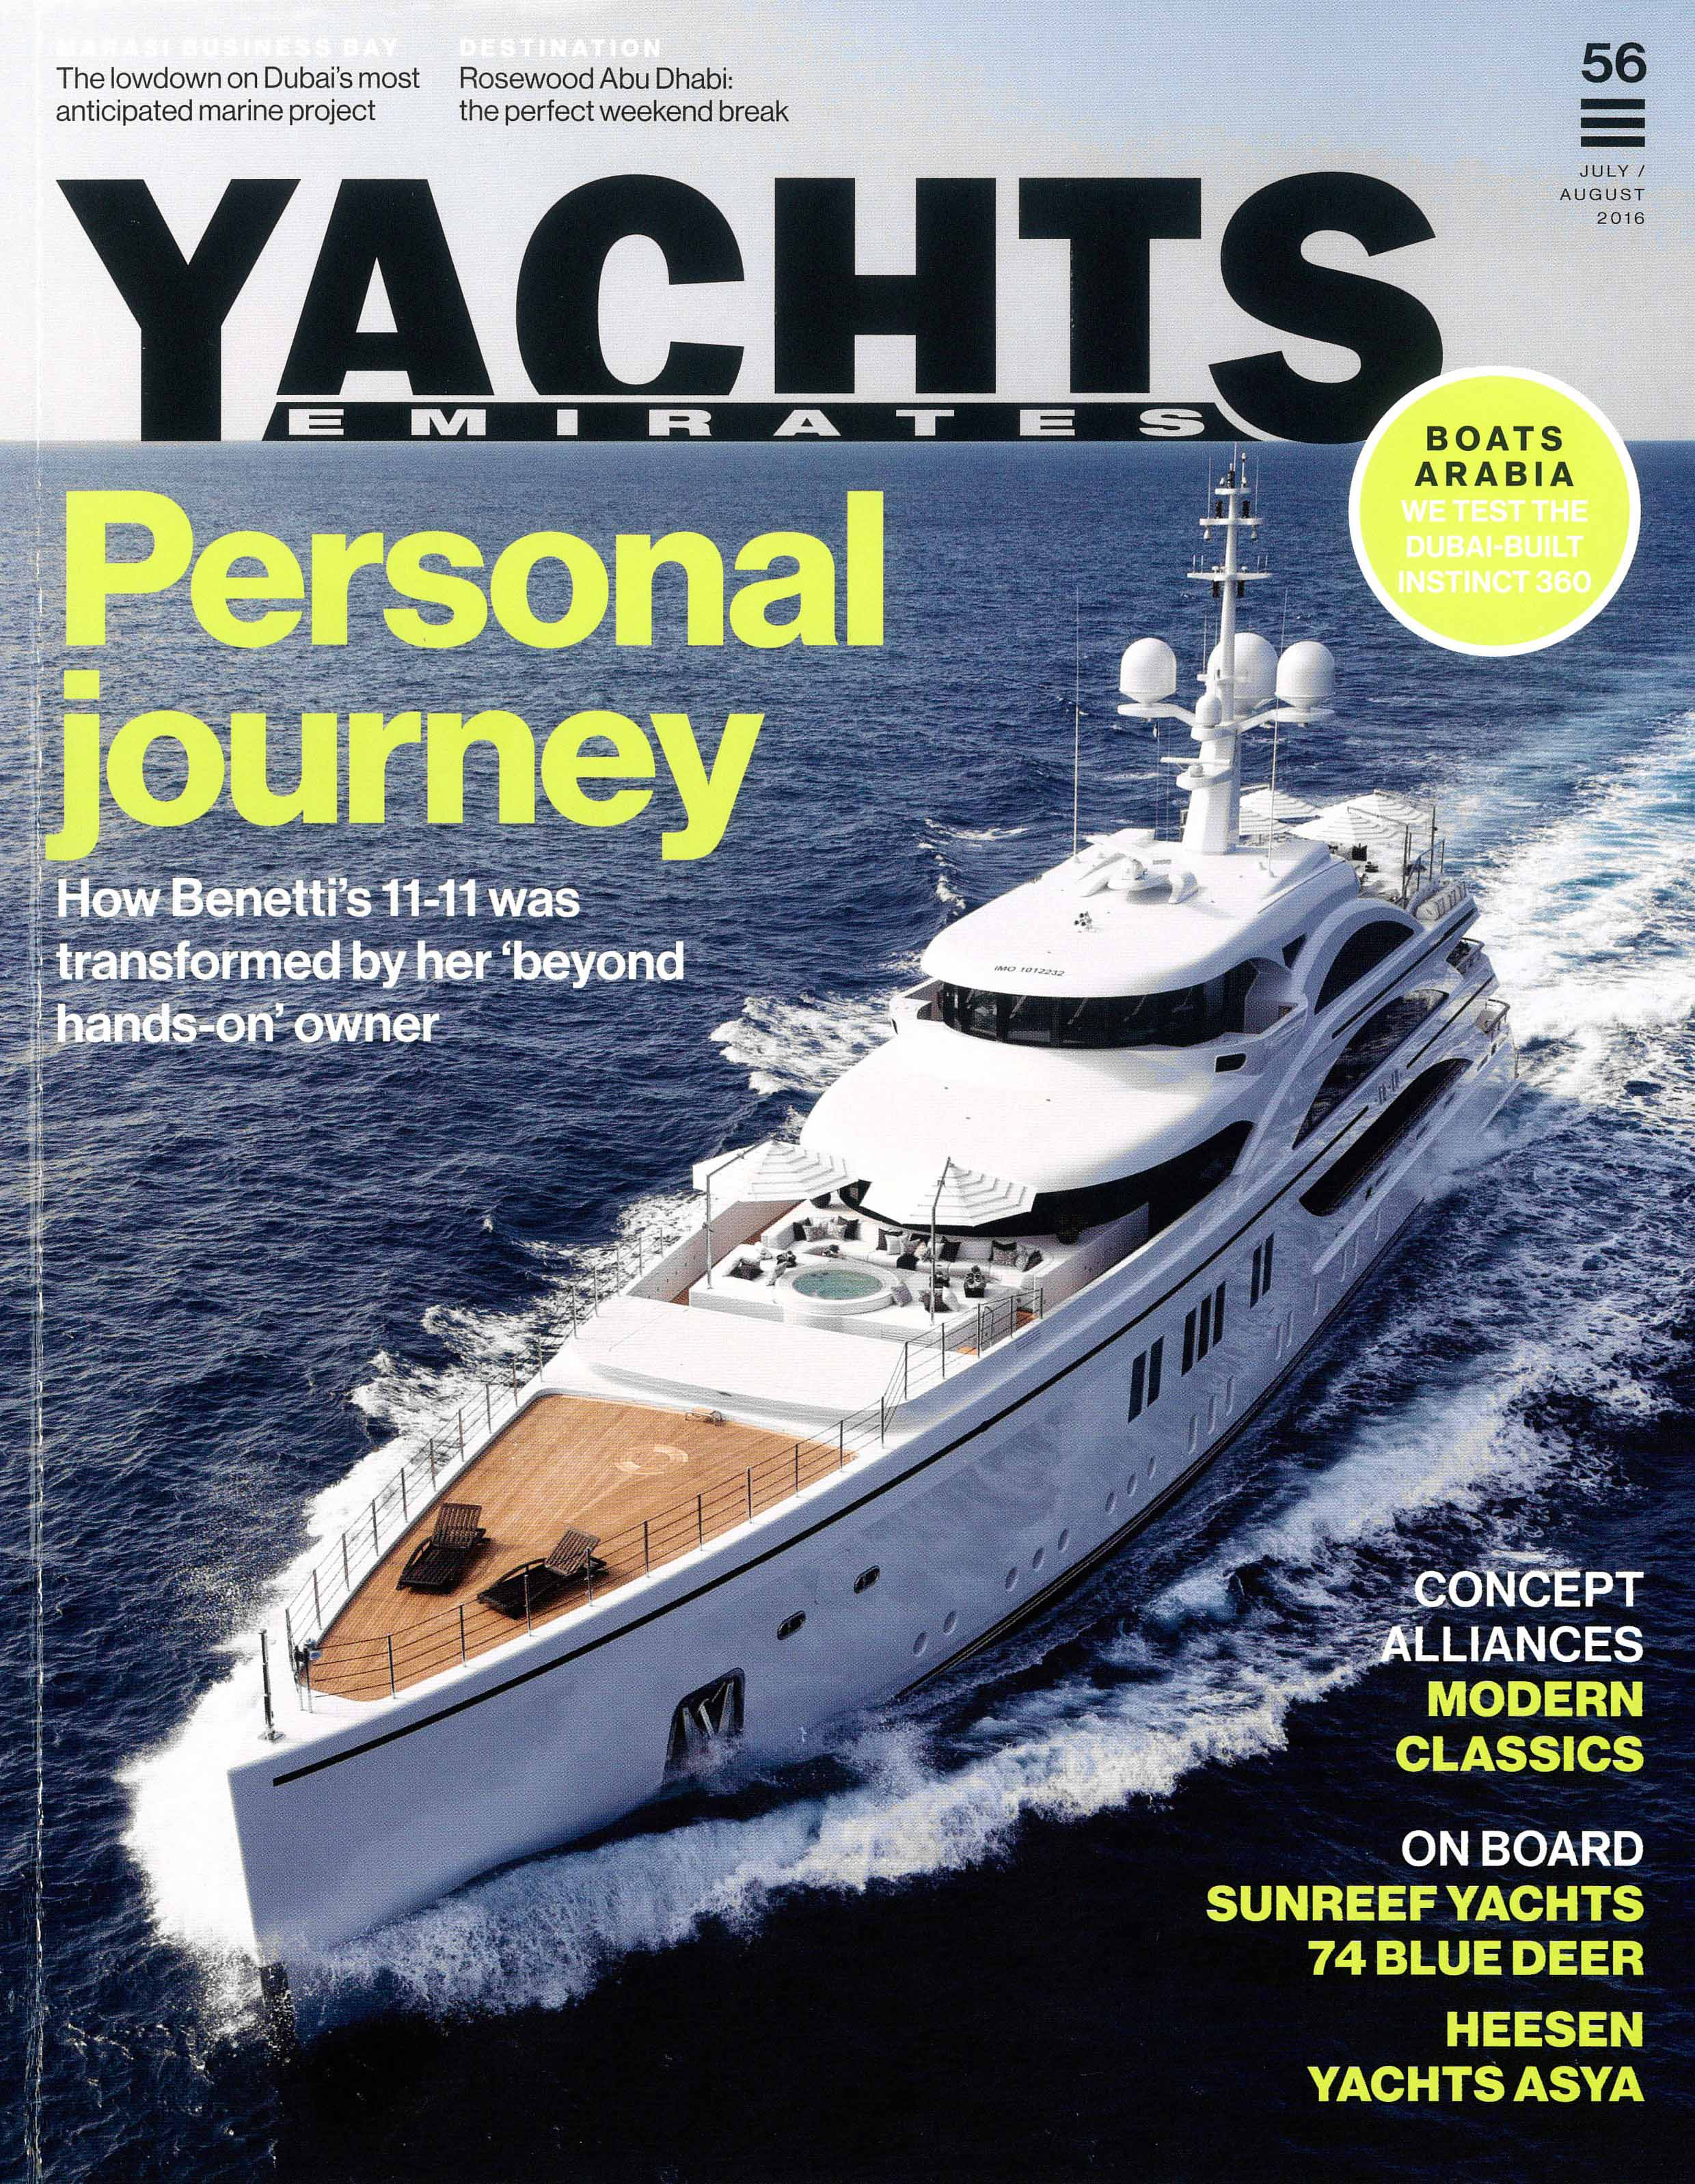 Yachts Emirates, issue 56/2016